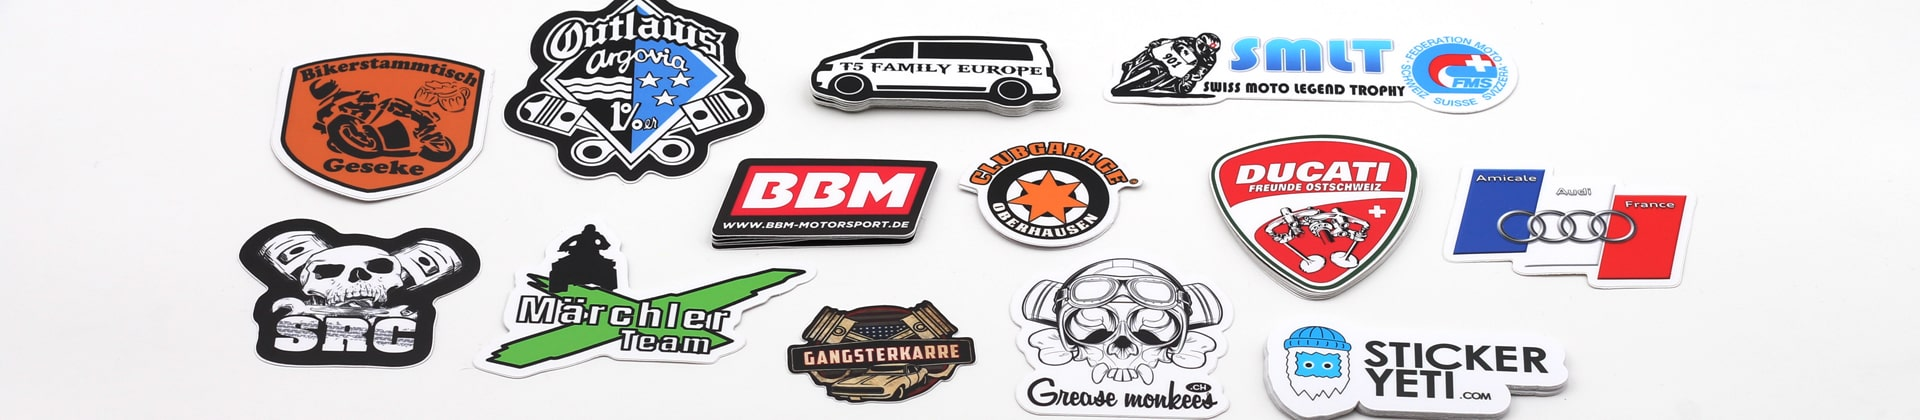 Shop high quality company logo stickers, product stickers, quickly print online startup stickers